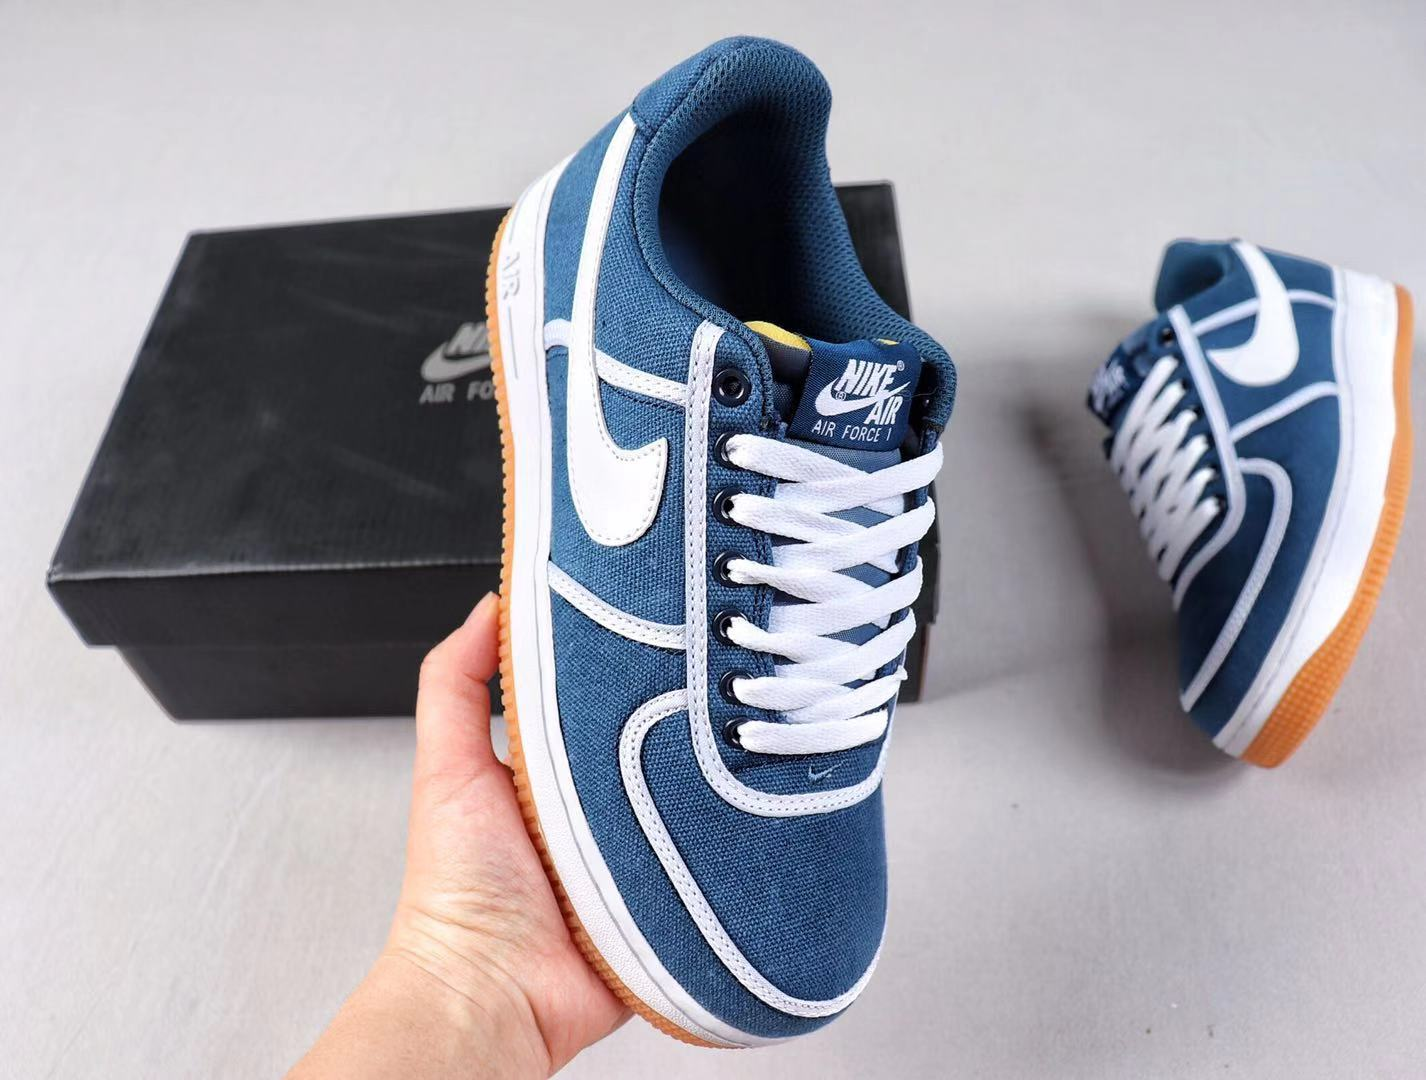 Buy Nike Wmns Air Force 1'07 CI9349-400 Armory Navy/White-Volt Top Shoes